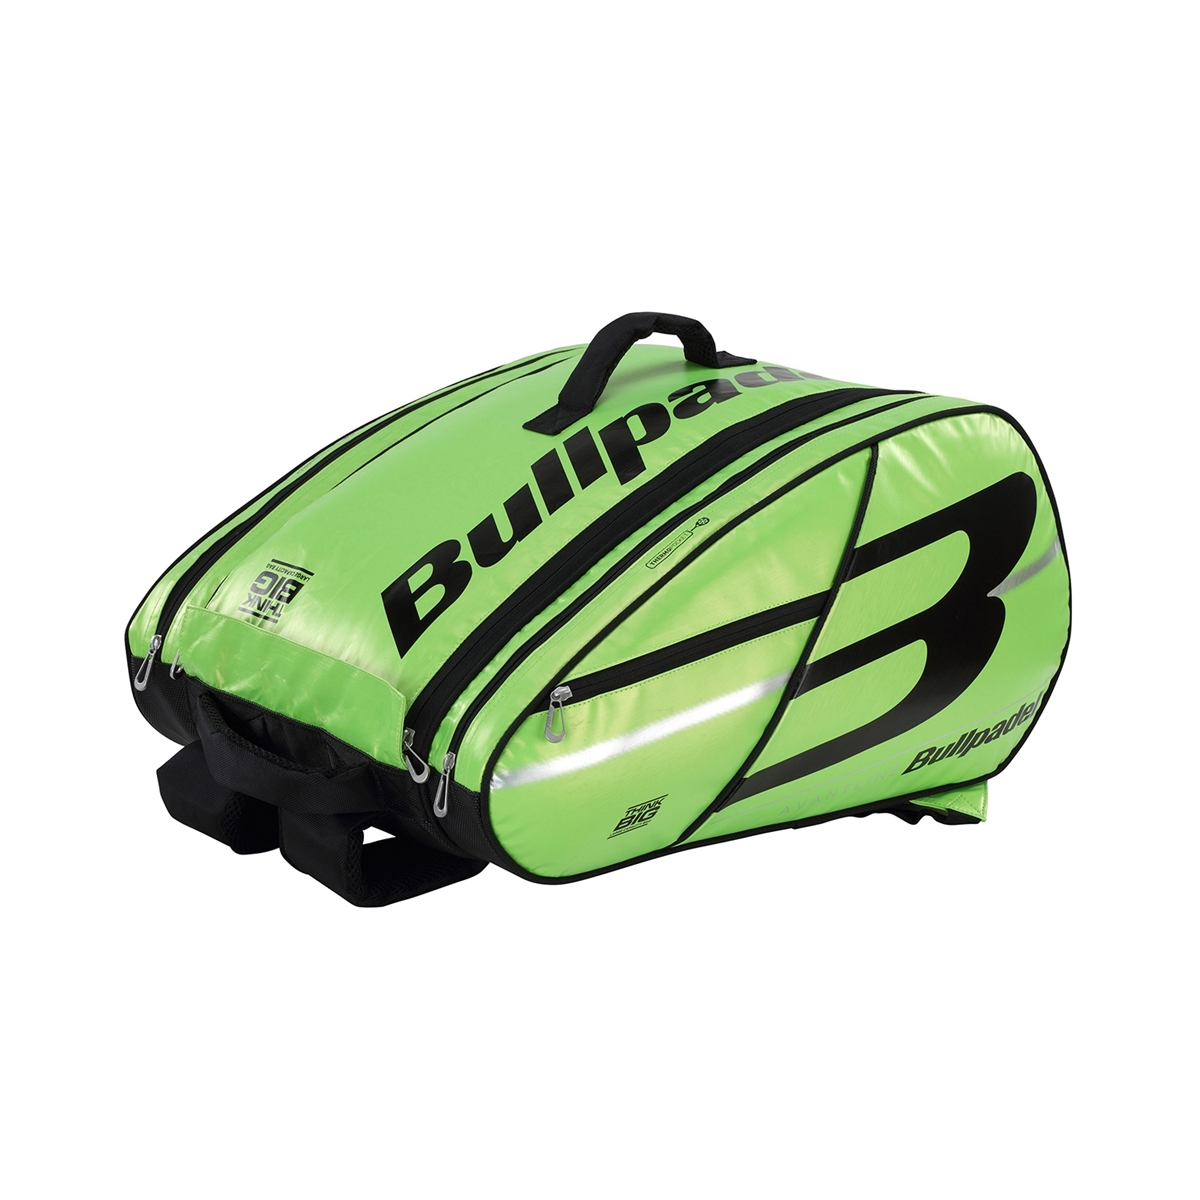 Bullpadel Big Capacity Green/Black